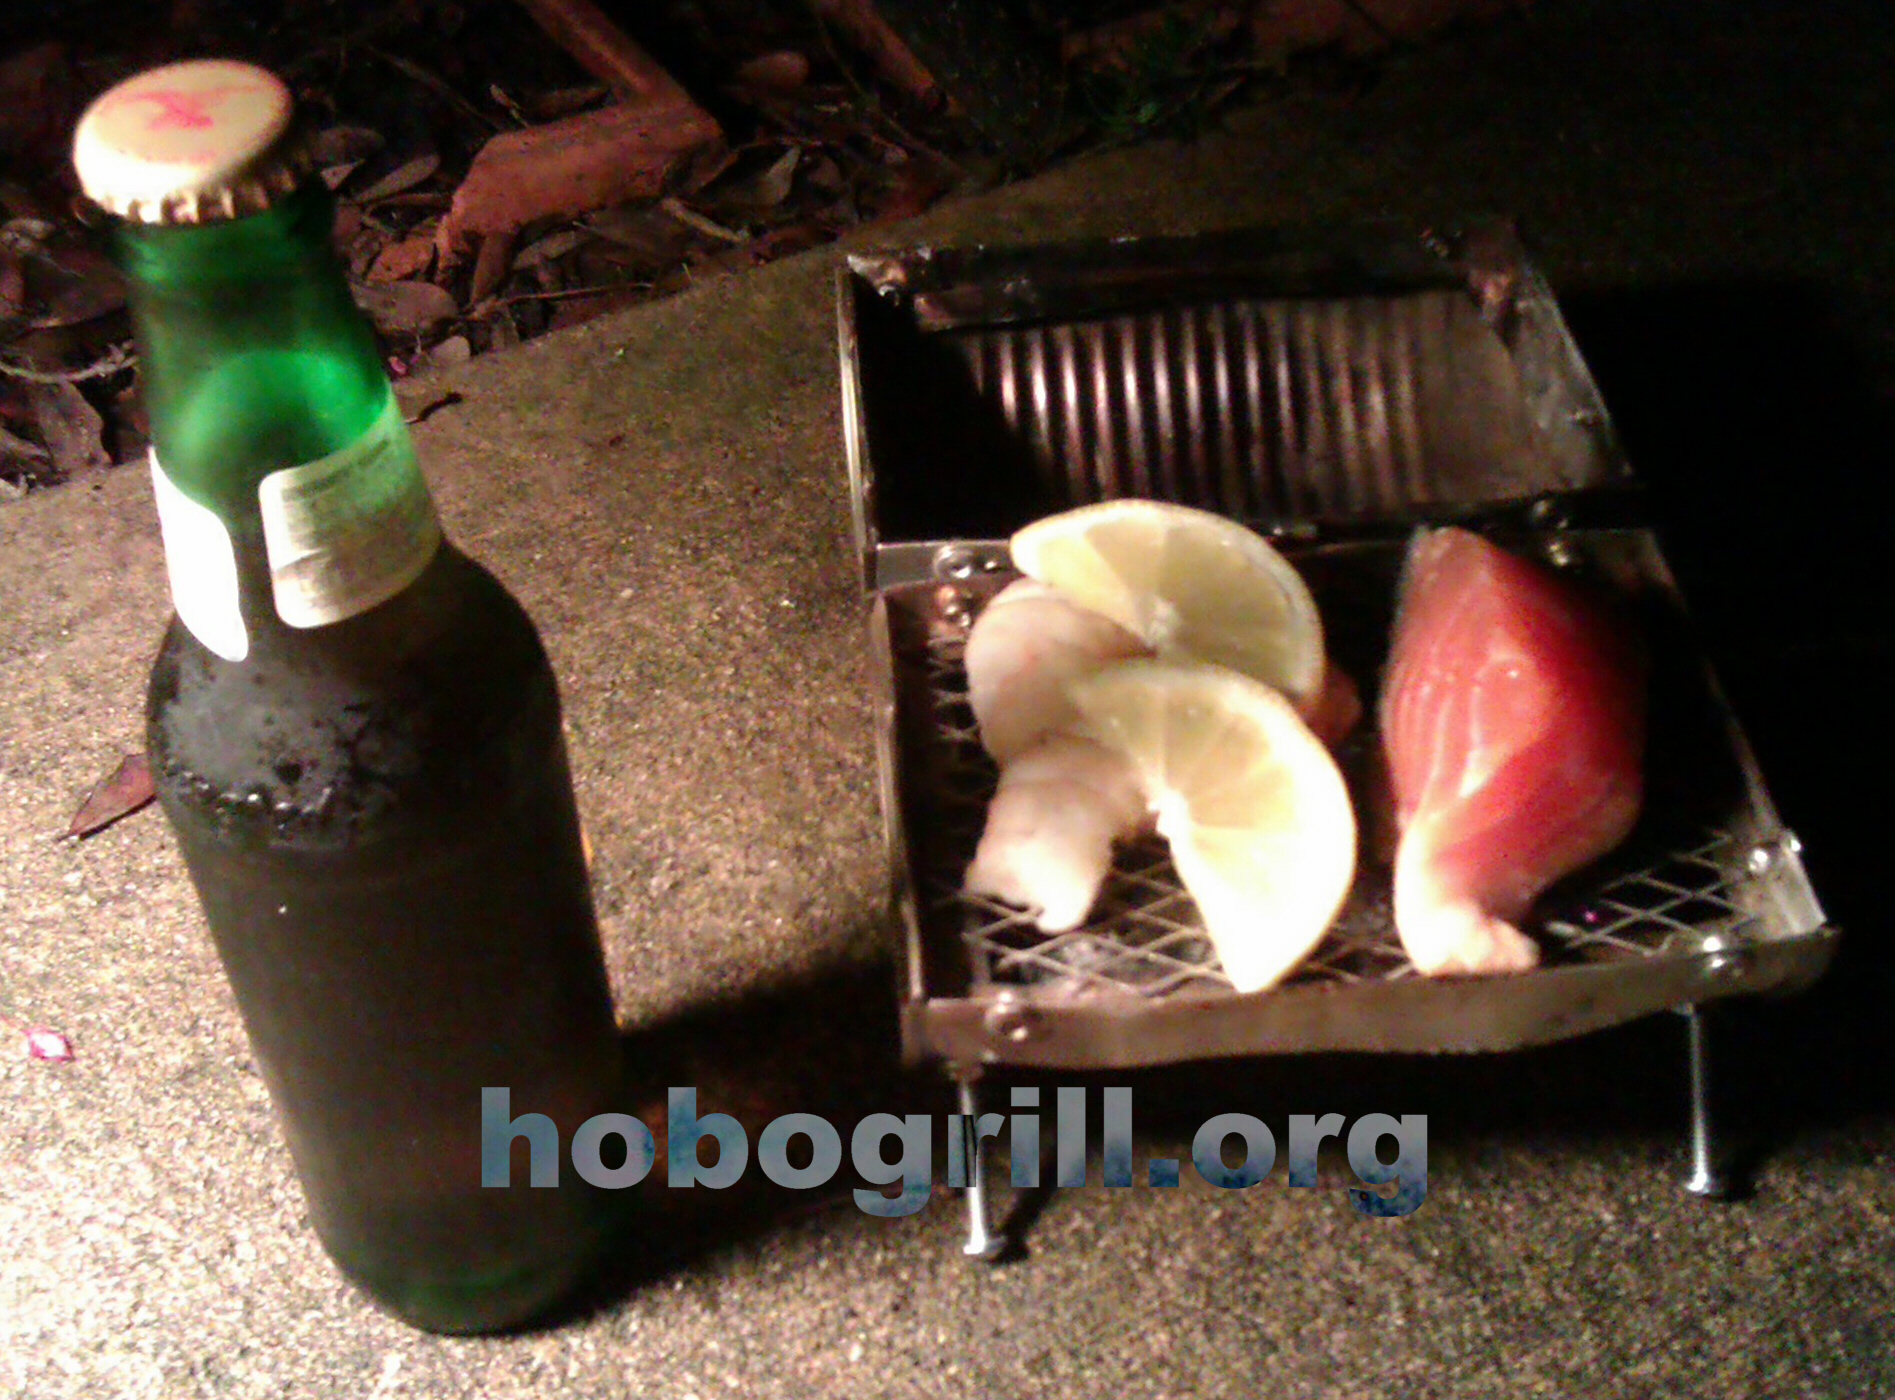 hobogrill.org world's smallest portable grill